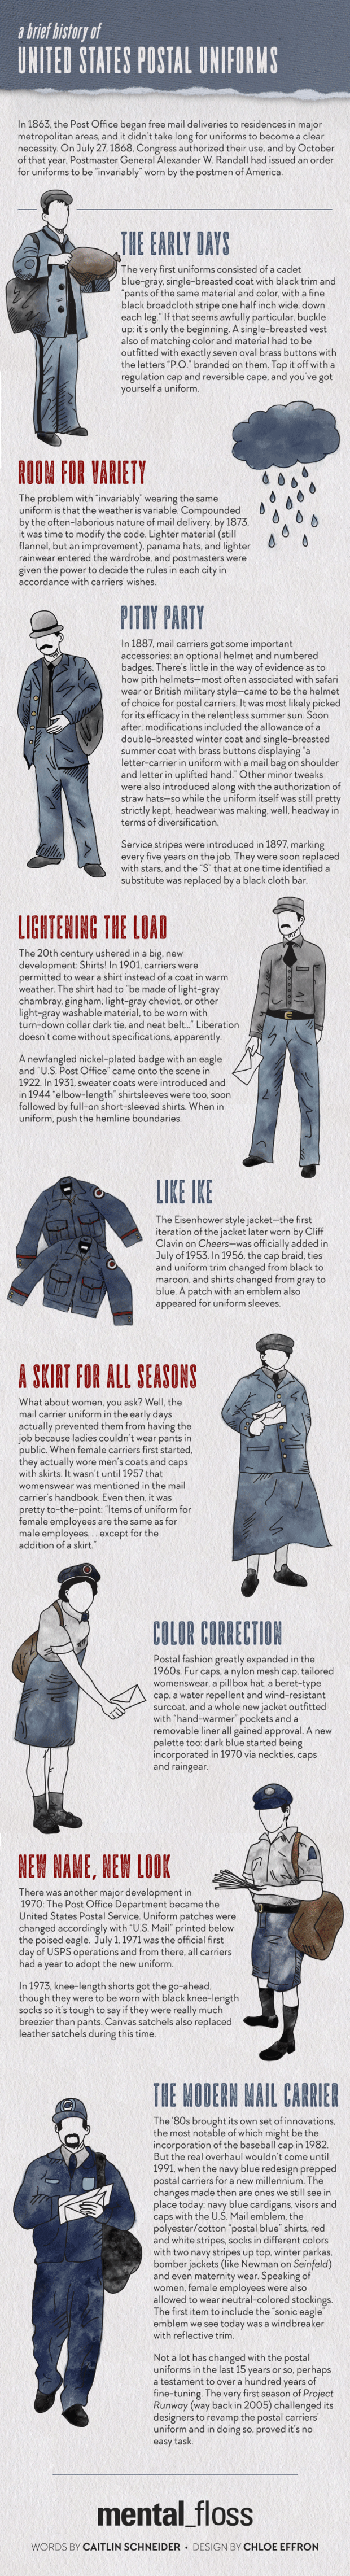 A Brief History of United States Postal Uniforms Mental